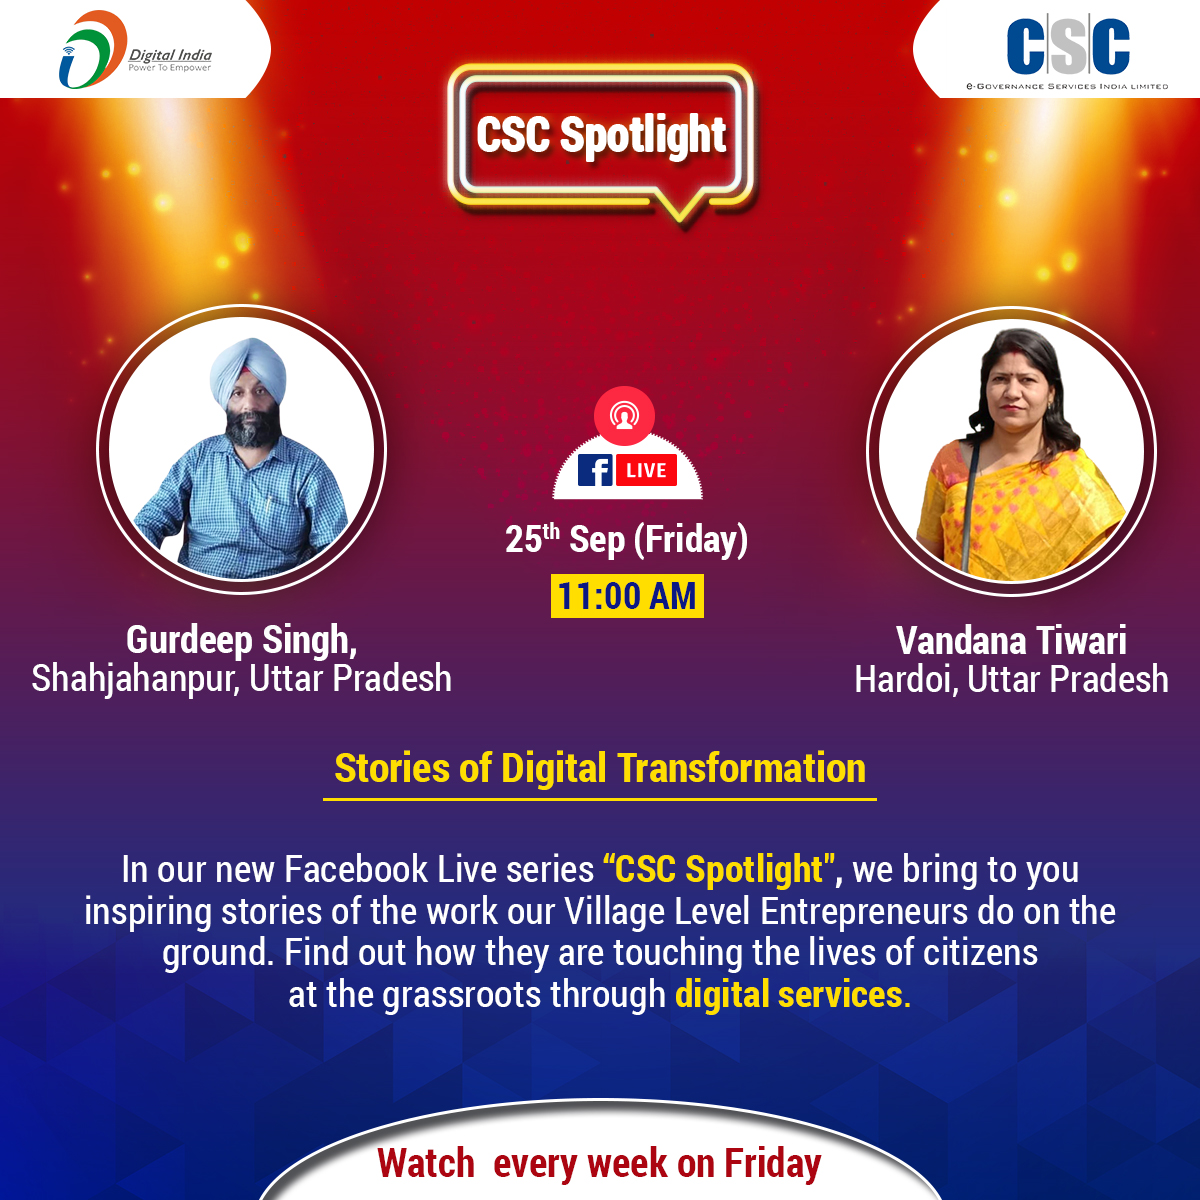 """""""CSC Spotlight - Stories of Digital Transformation""""  It's a double treat for you all this Friday's, the guests are VLE Vandana Rewari & VLE Gurdeep Singh from #UttarPradesh.  Watch it Live on #CSC Facebook page on #Friday, 25th Sep 2020, at 11AM.  #DigitalIndia #CSCSpotlight https://t.co/4lhE7w0wnC"""